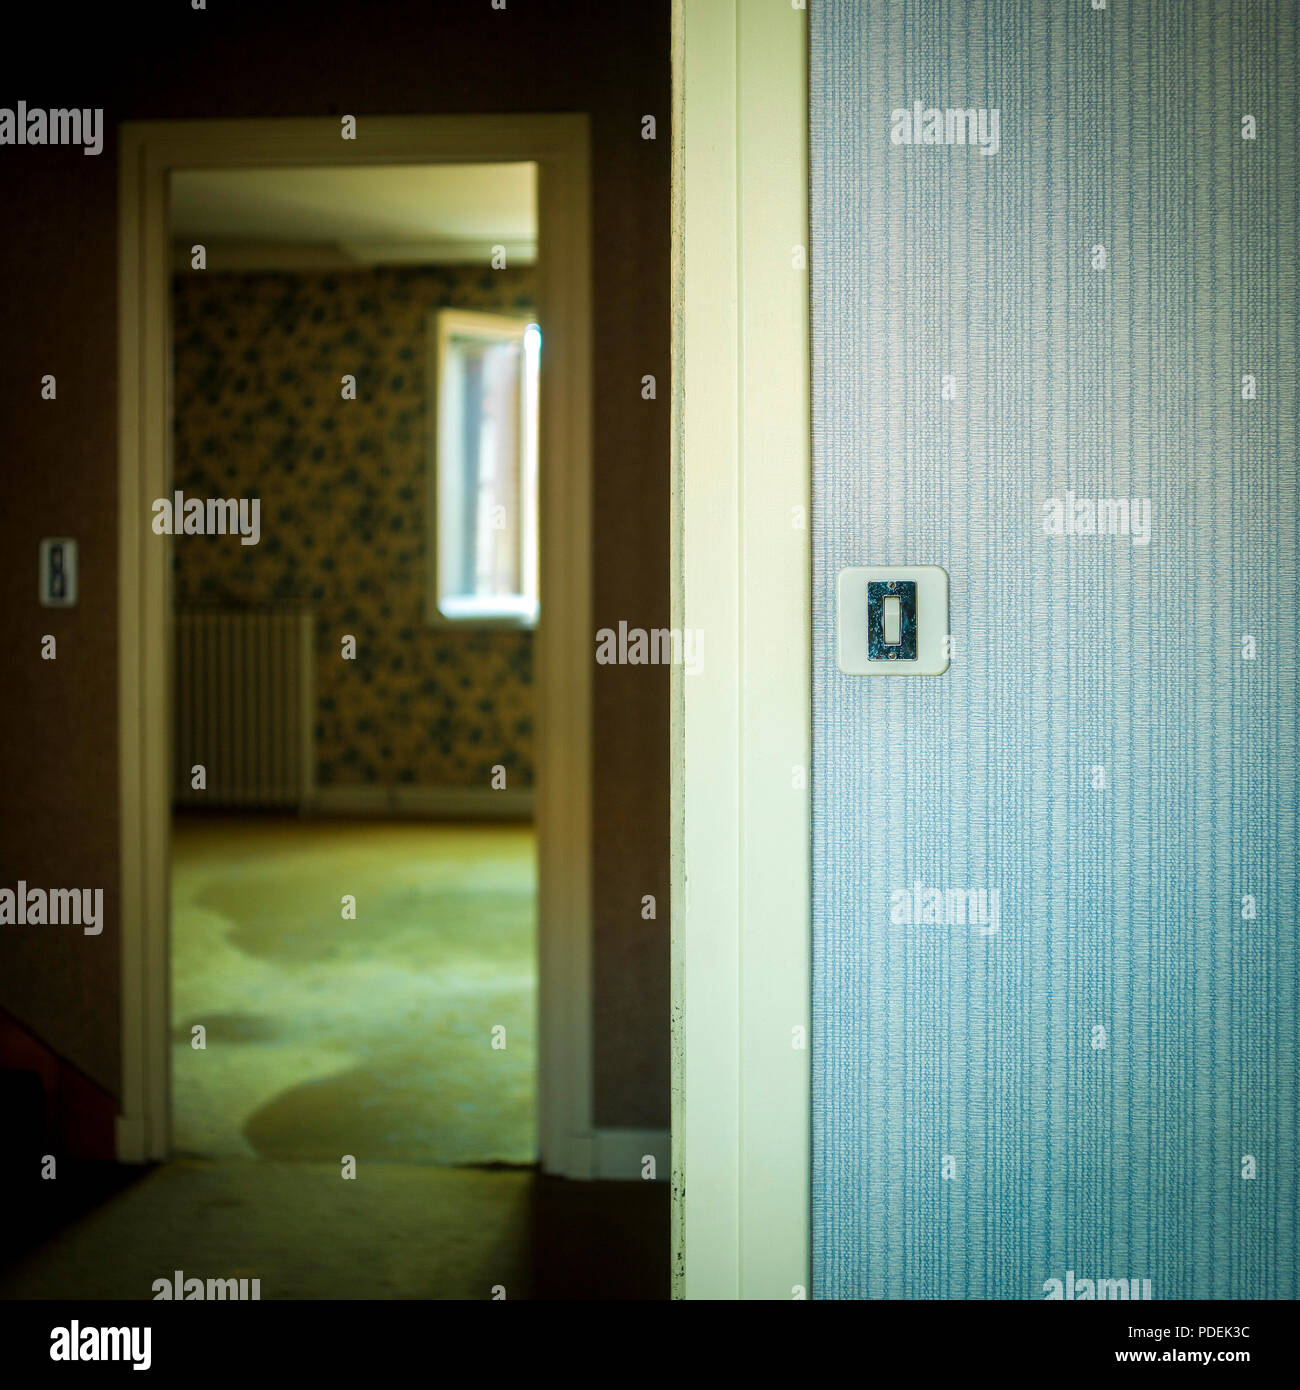 Switch In Old House Stock Photos How To Repair A Doorknob Oldhouse Online Doorway Image